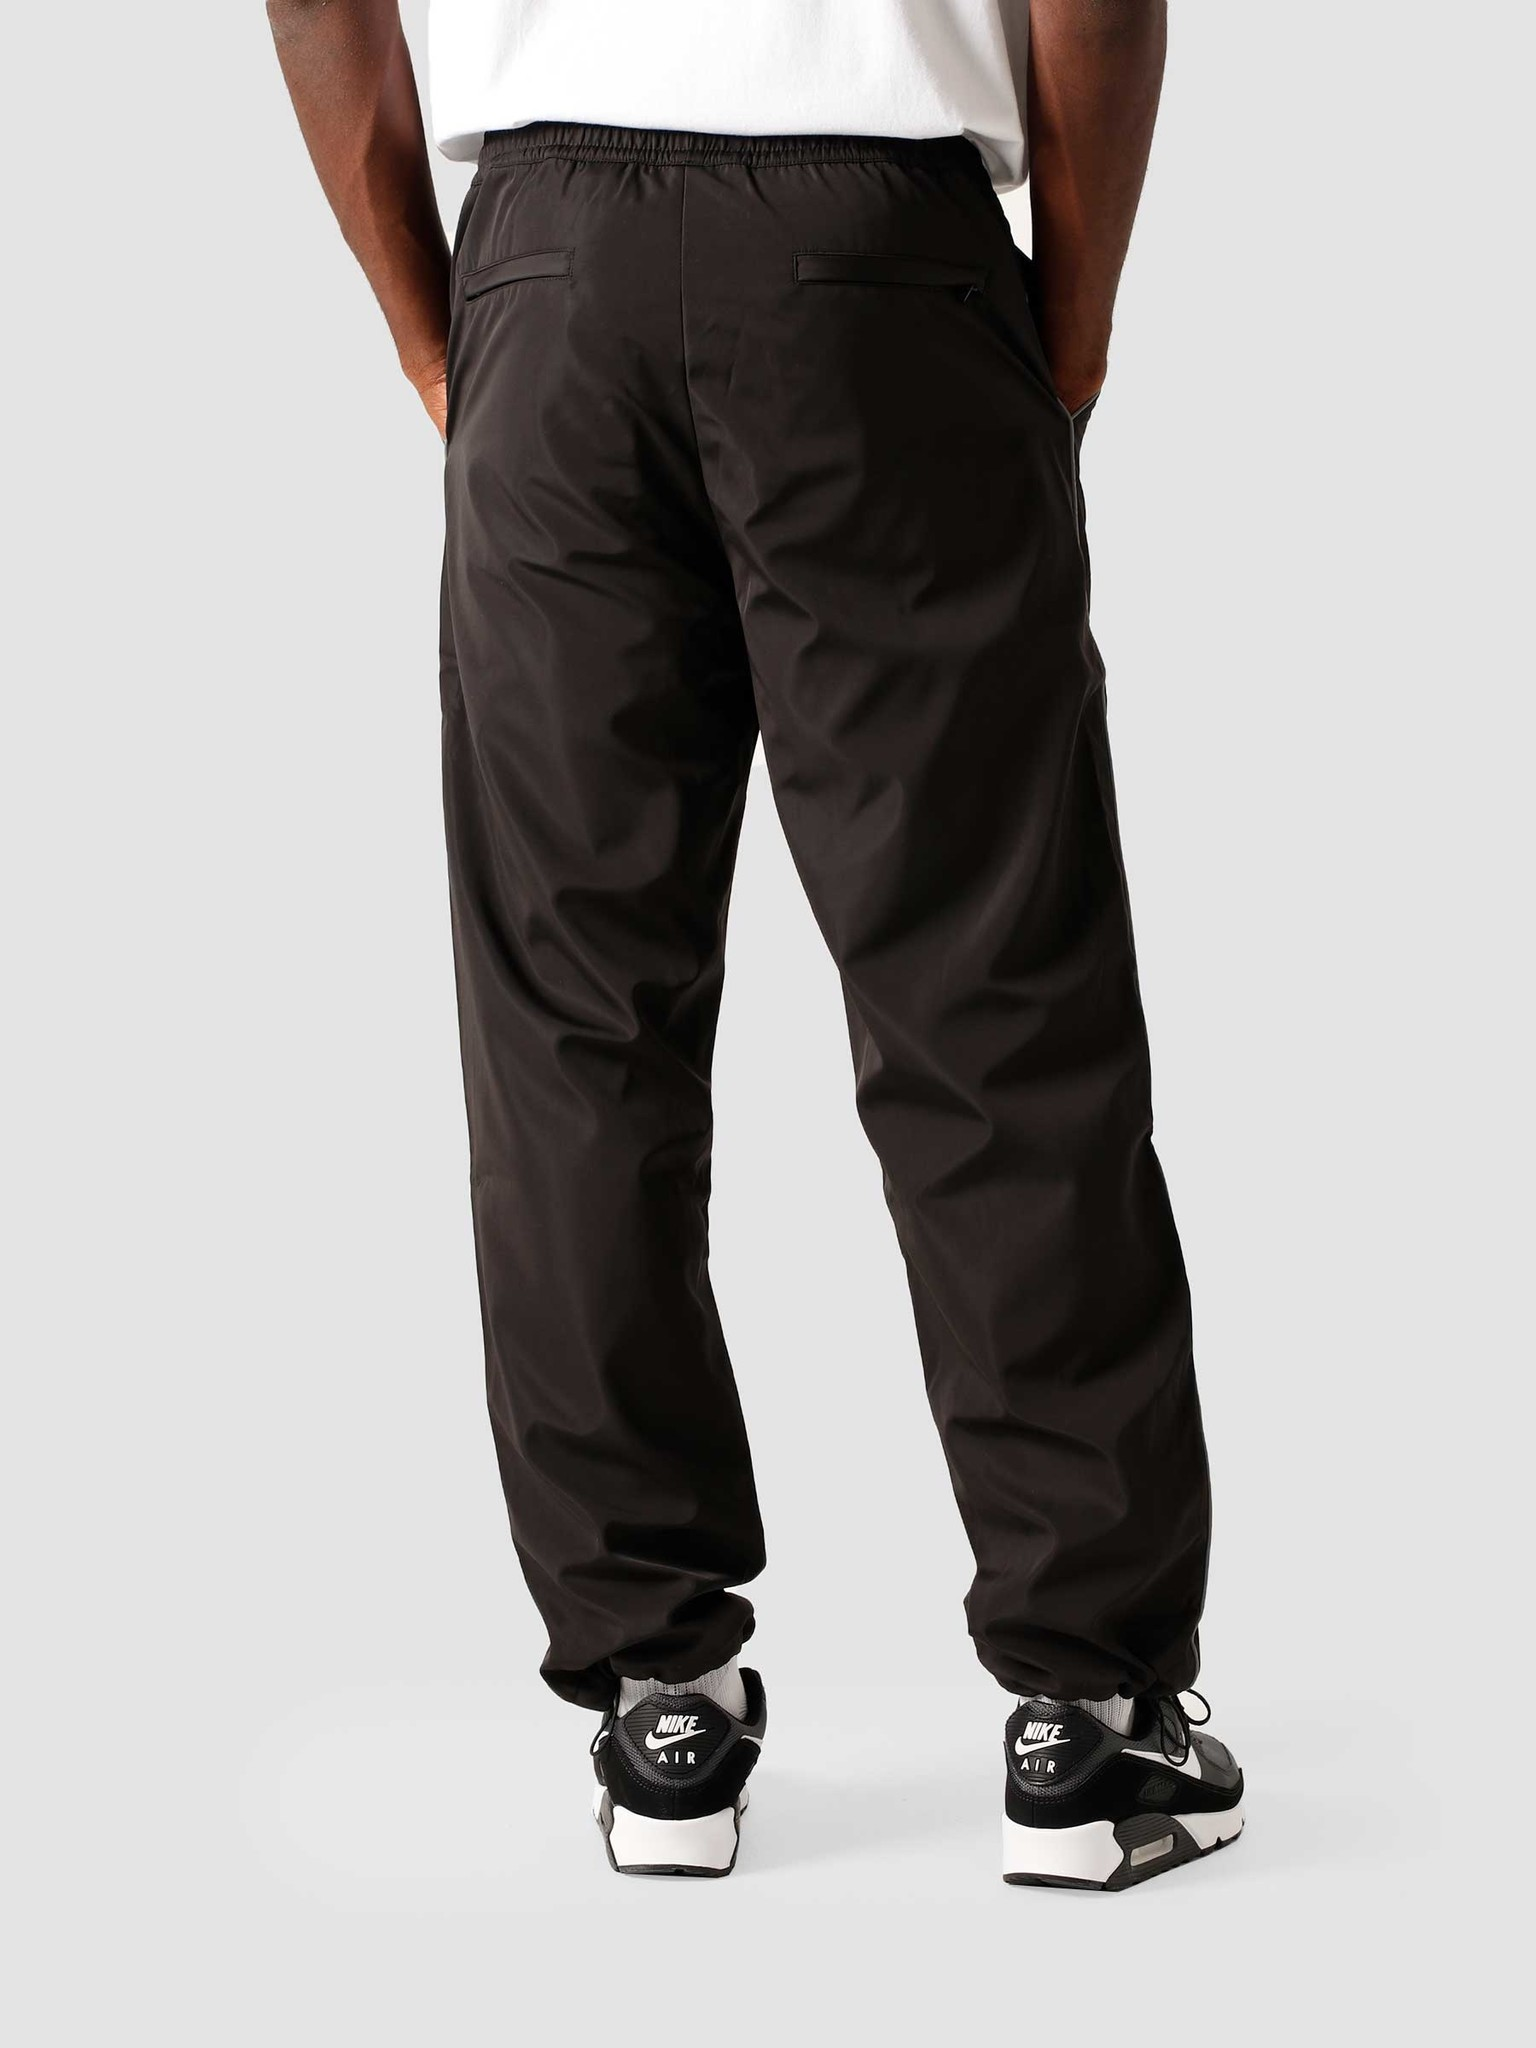 Daily Paper Daily Paper Etrack Pants Black 2021127